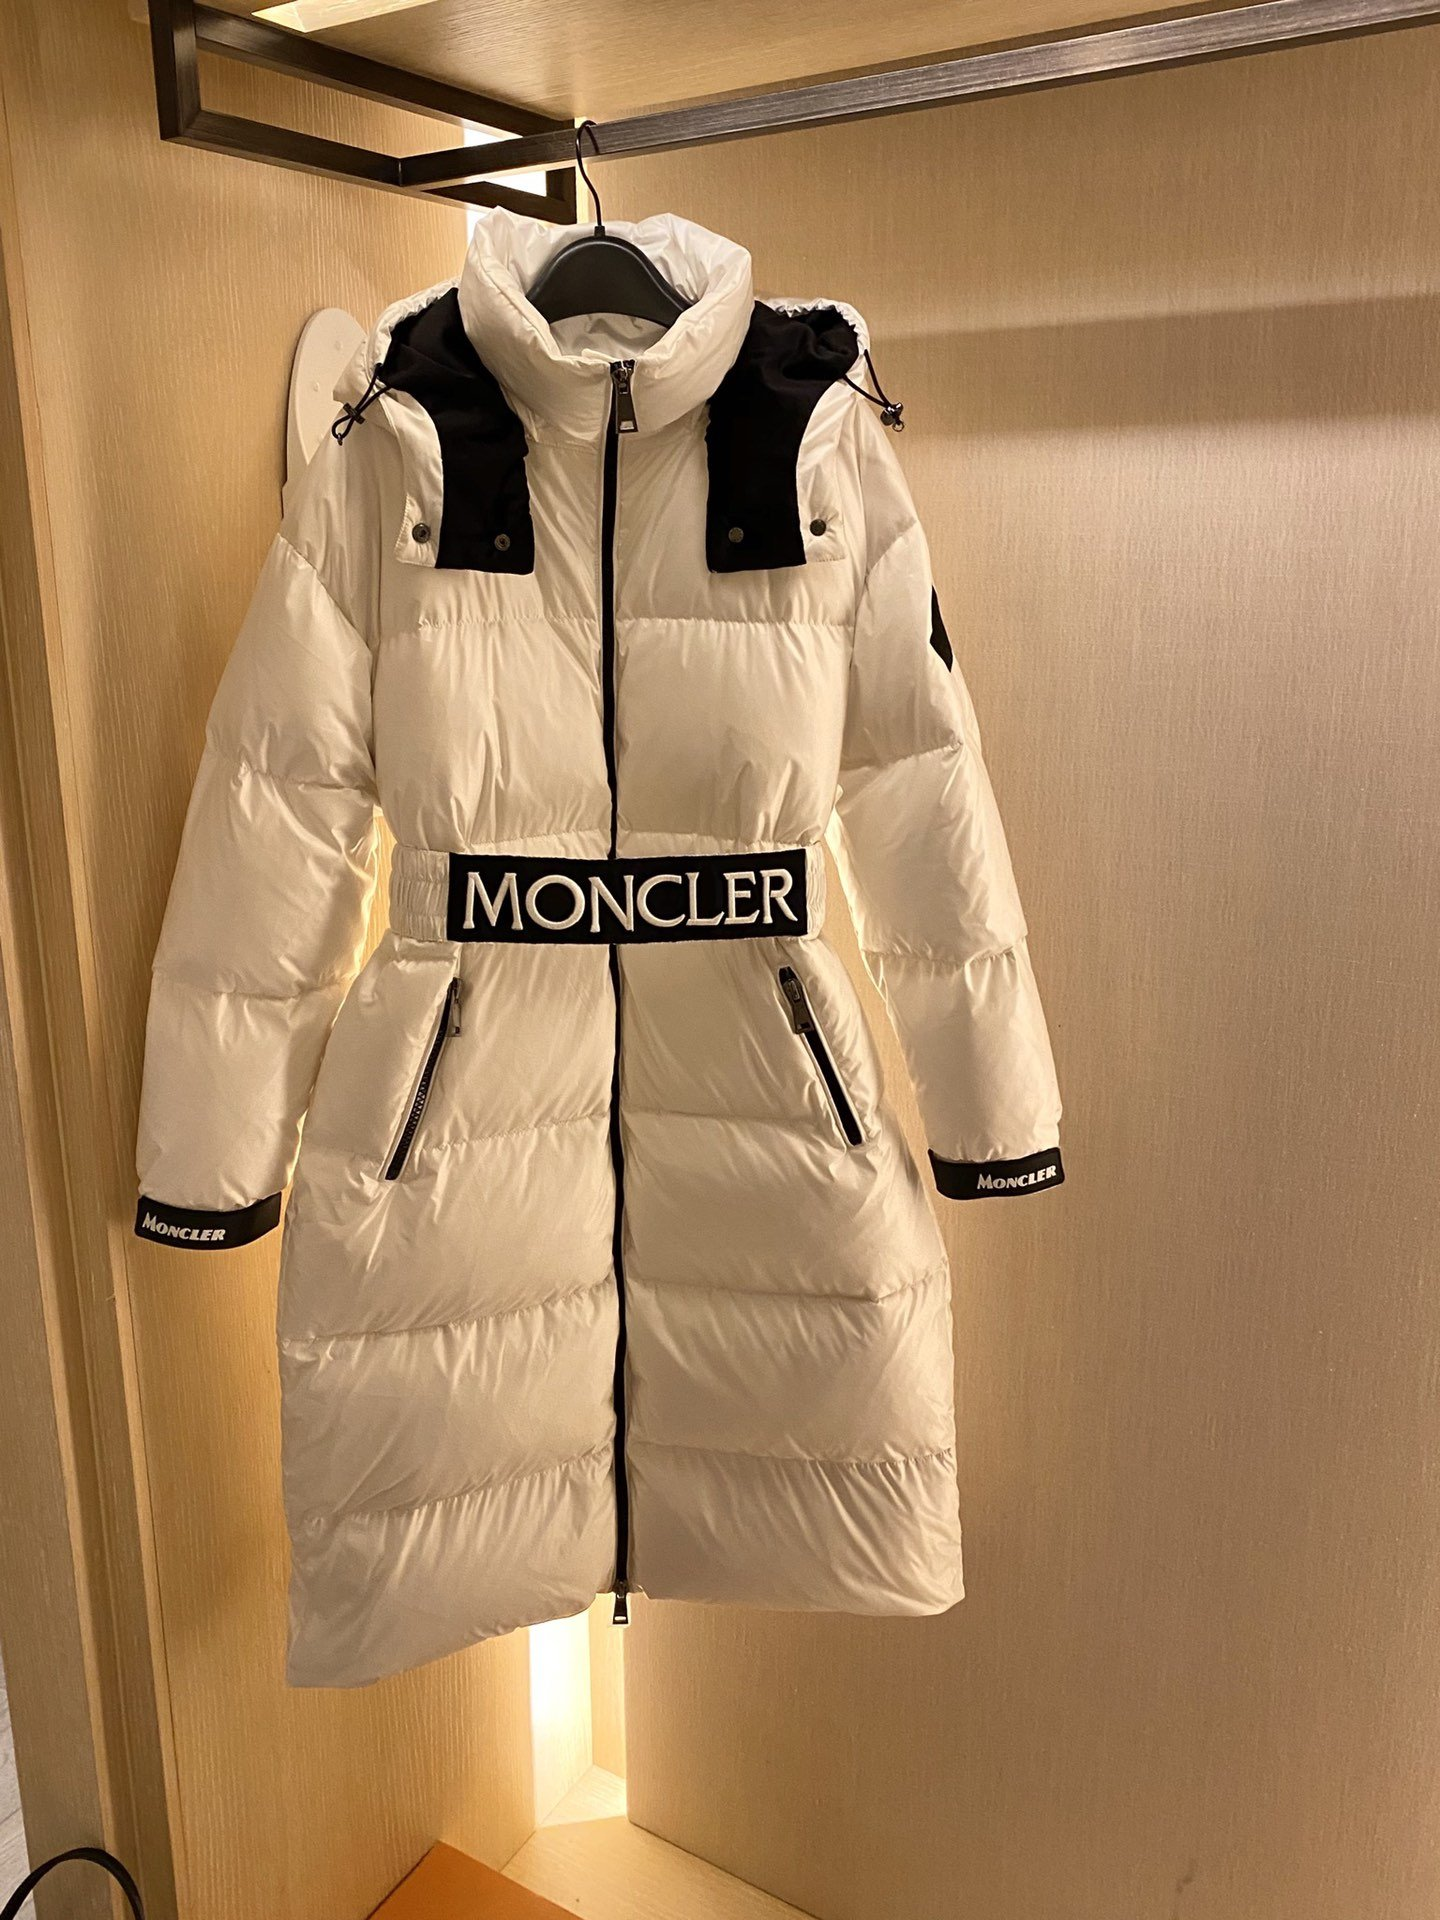 2020 Moncler Down Jackets For Women # 230381, cheap Moncler down Jackets Women, only $159!